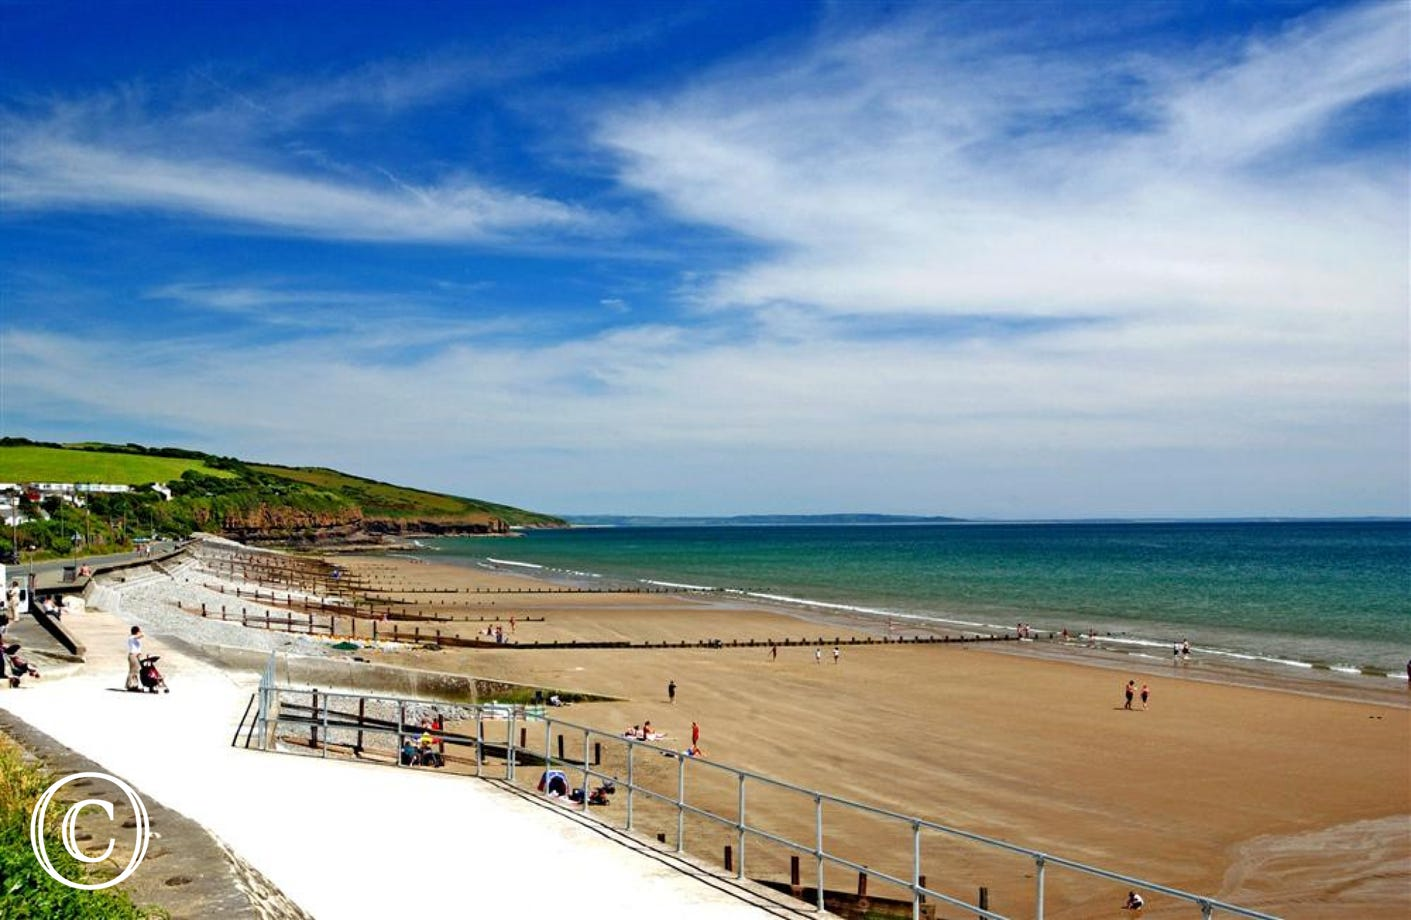 The beautiful beach at Amroth with a couple of cafes and a souvenir shop.